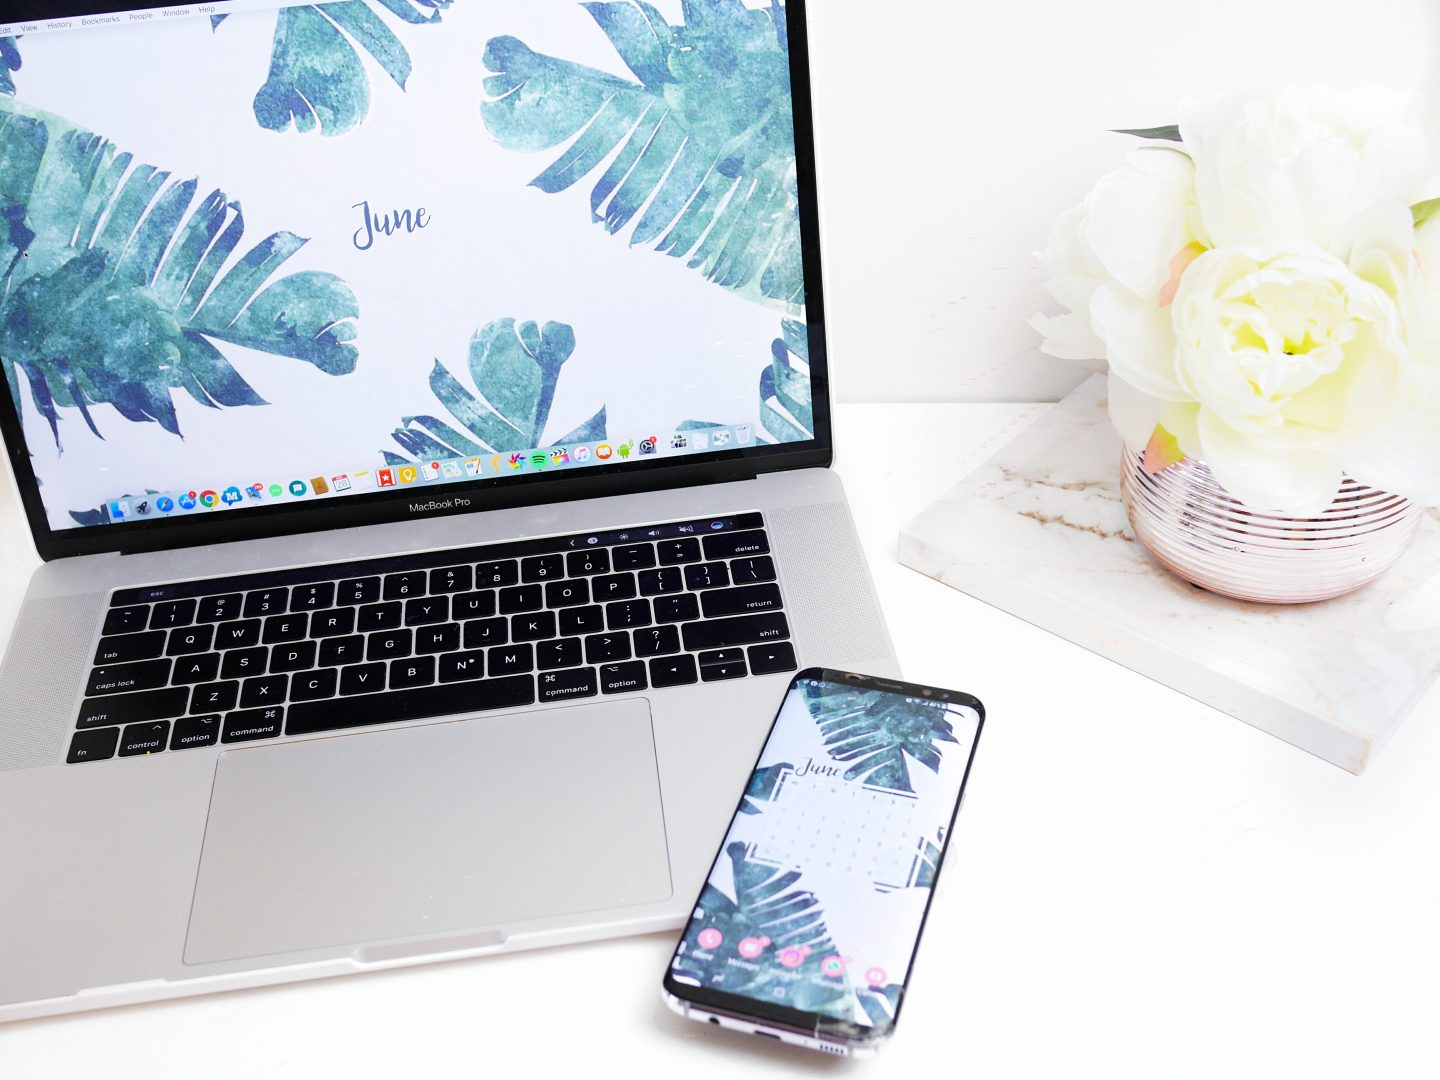 June 2018 Wallpapers – Free Download!